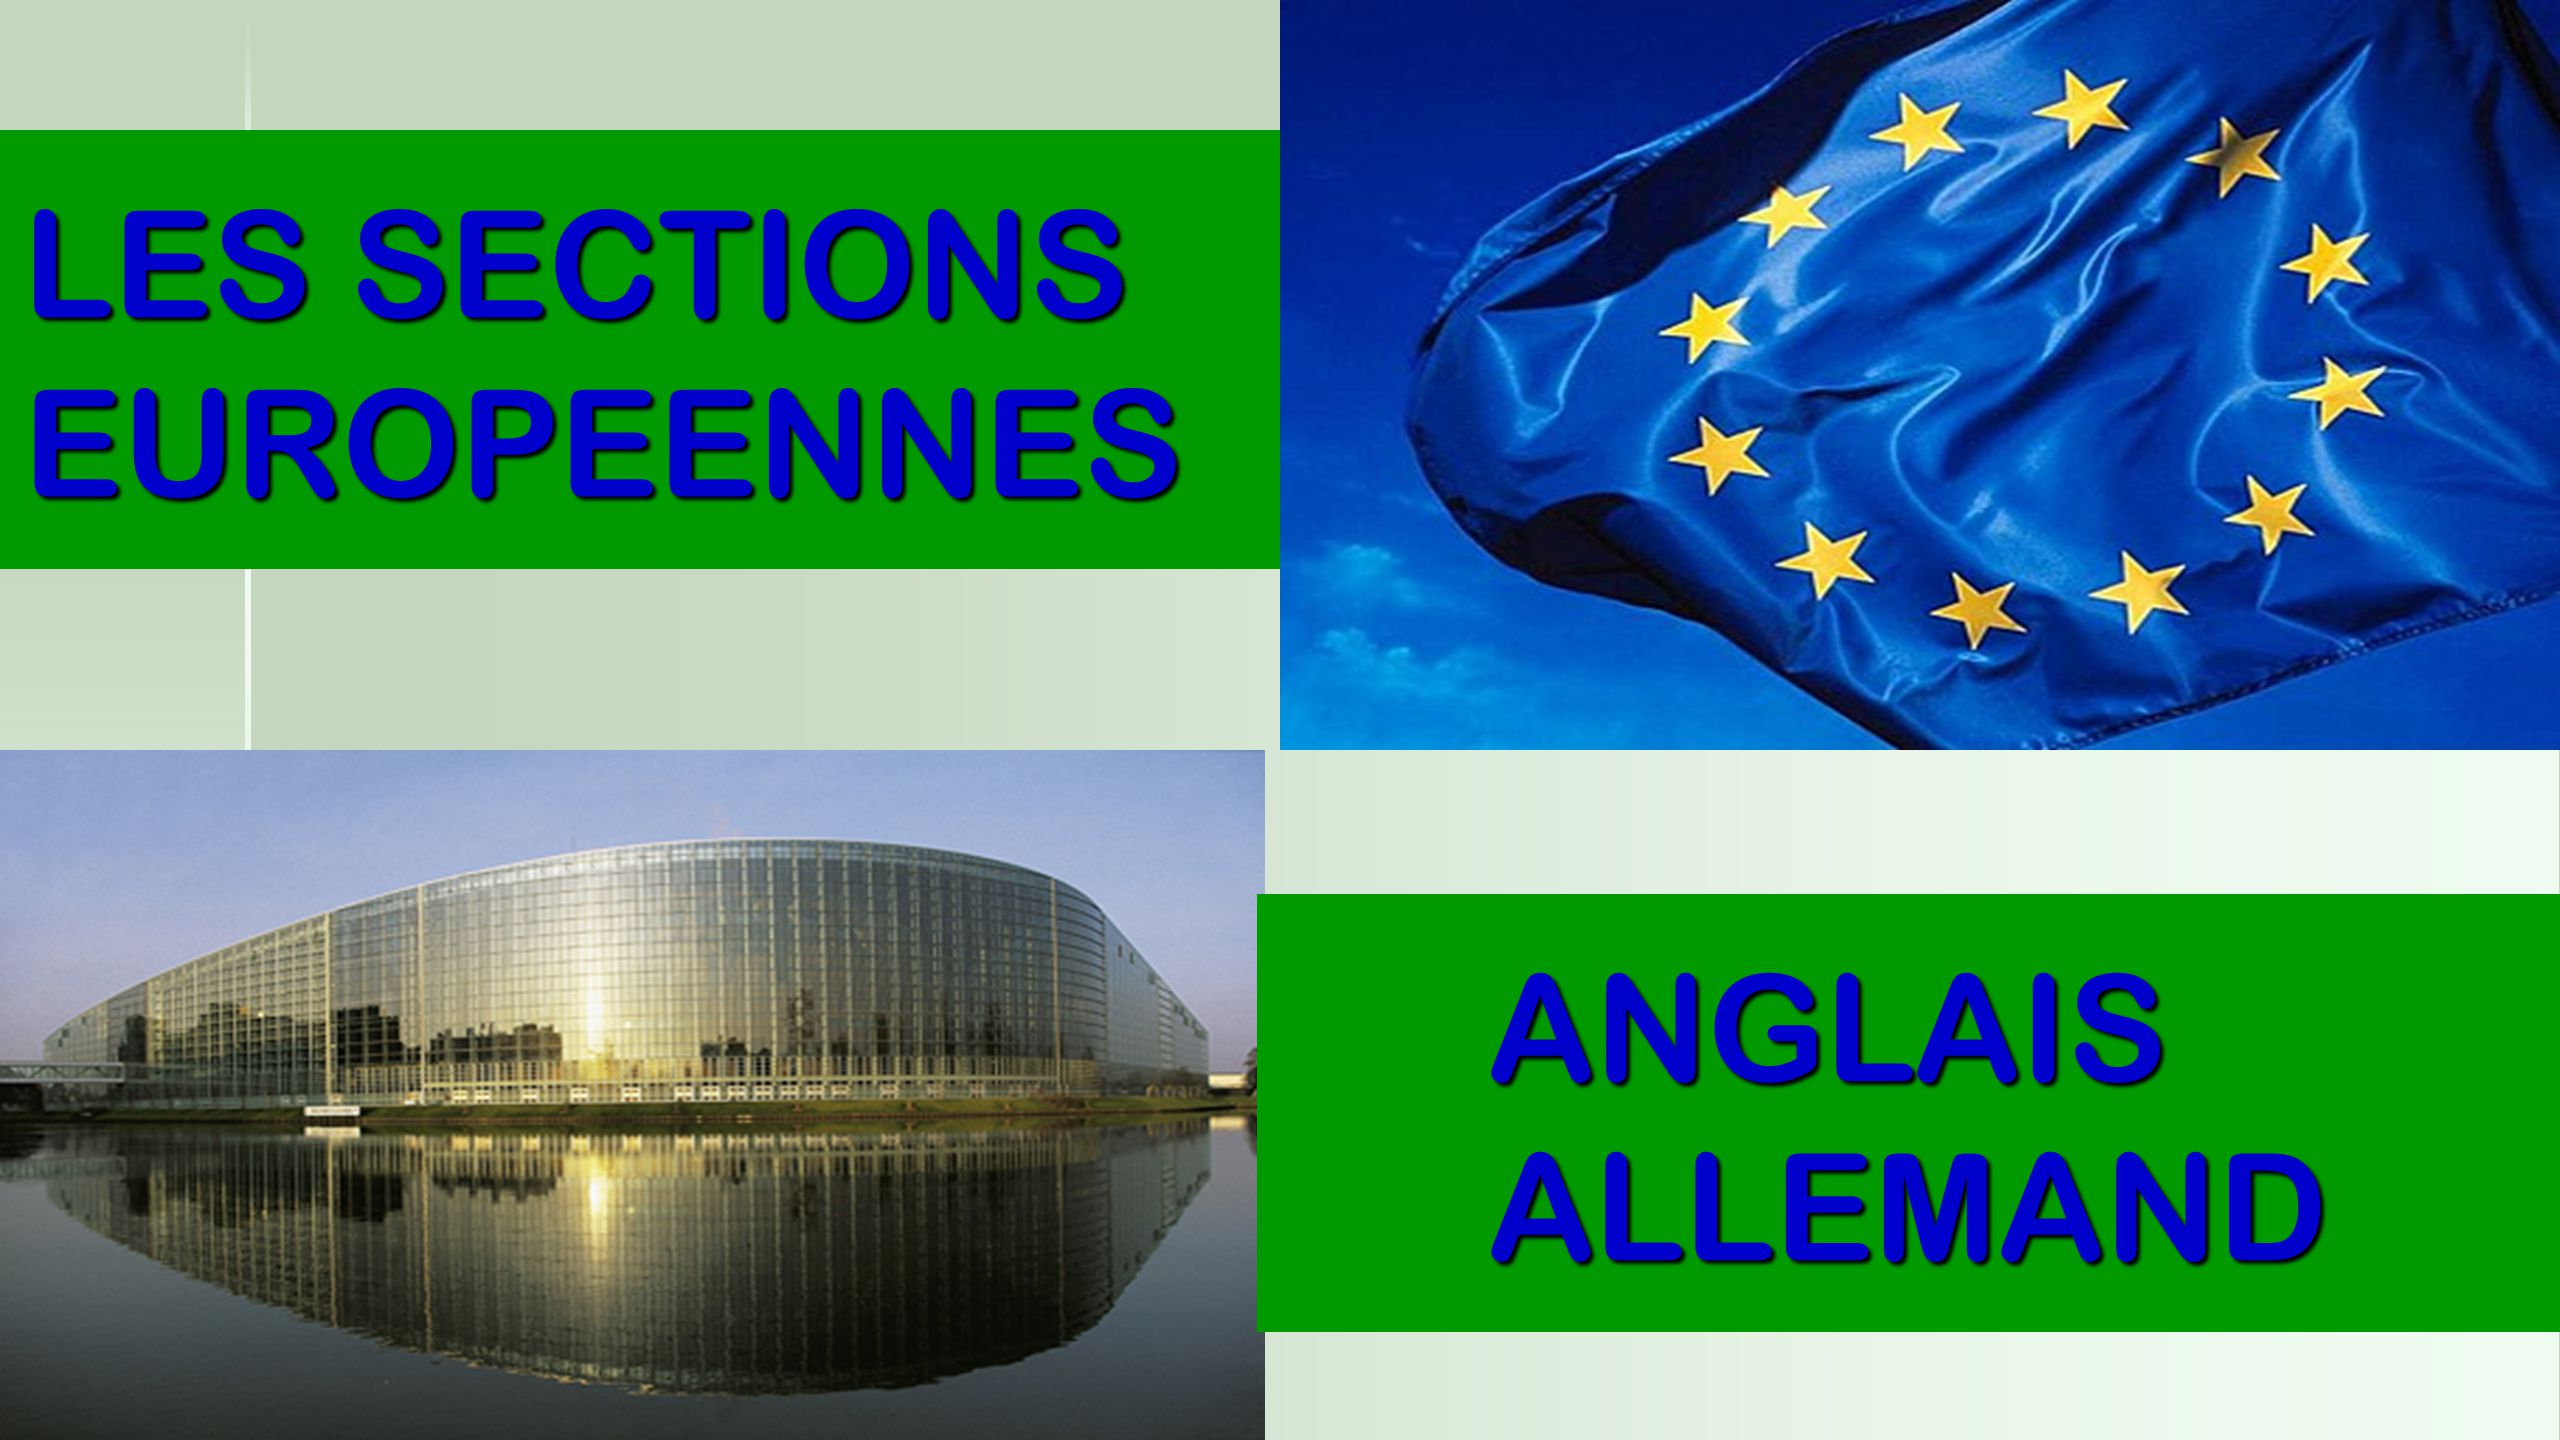 LES SECTIONS EUROPEENNES